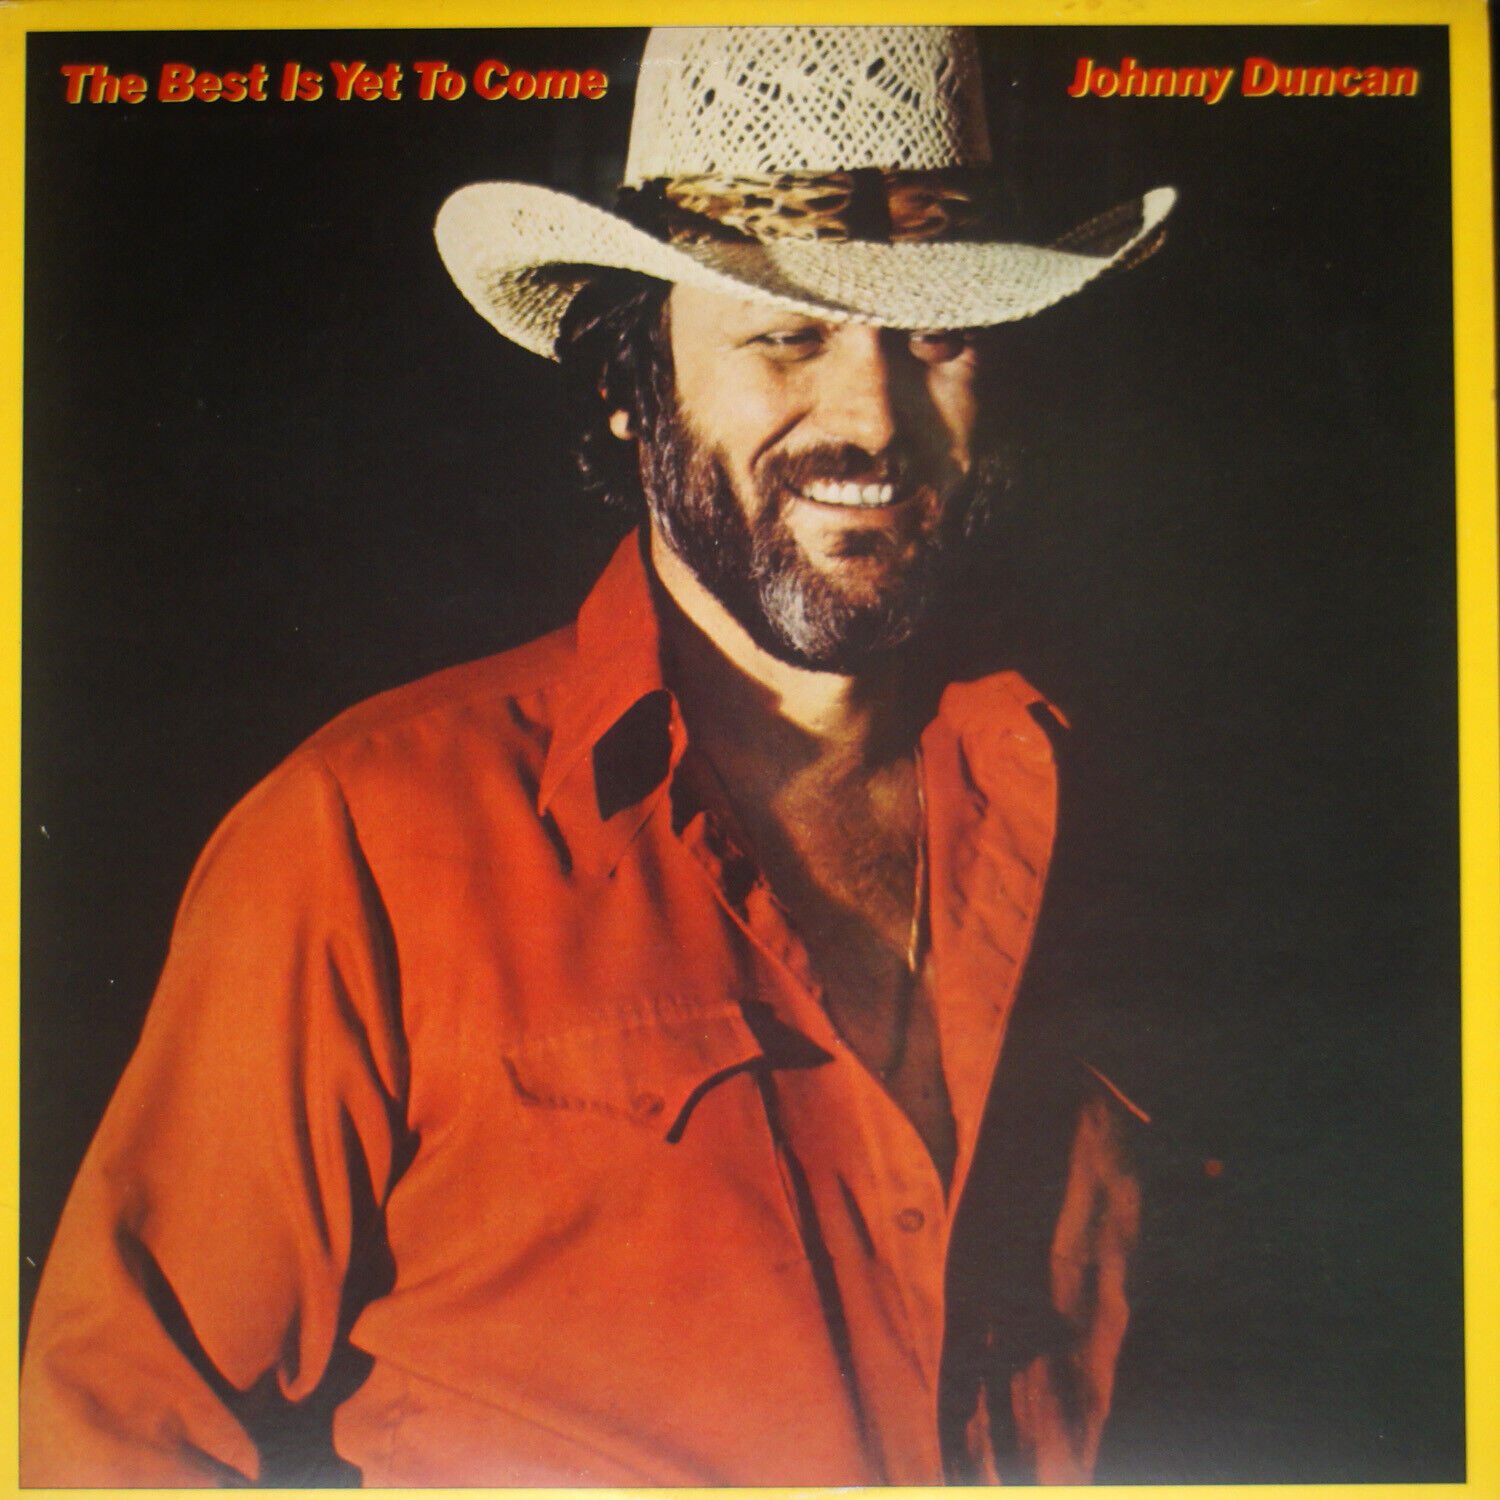 Johnny Duncan - The Best Is Yet To Come EX/VG A5-1668 Vinyl LP - $15.00